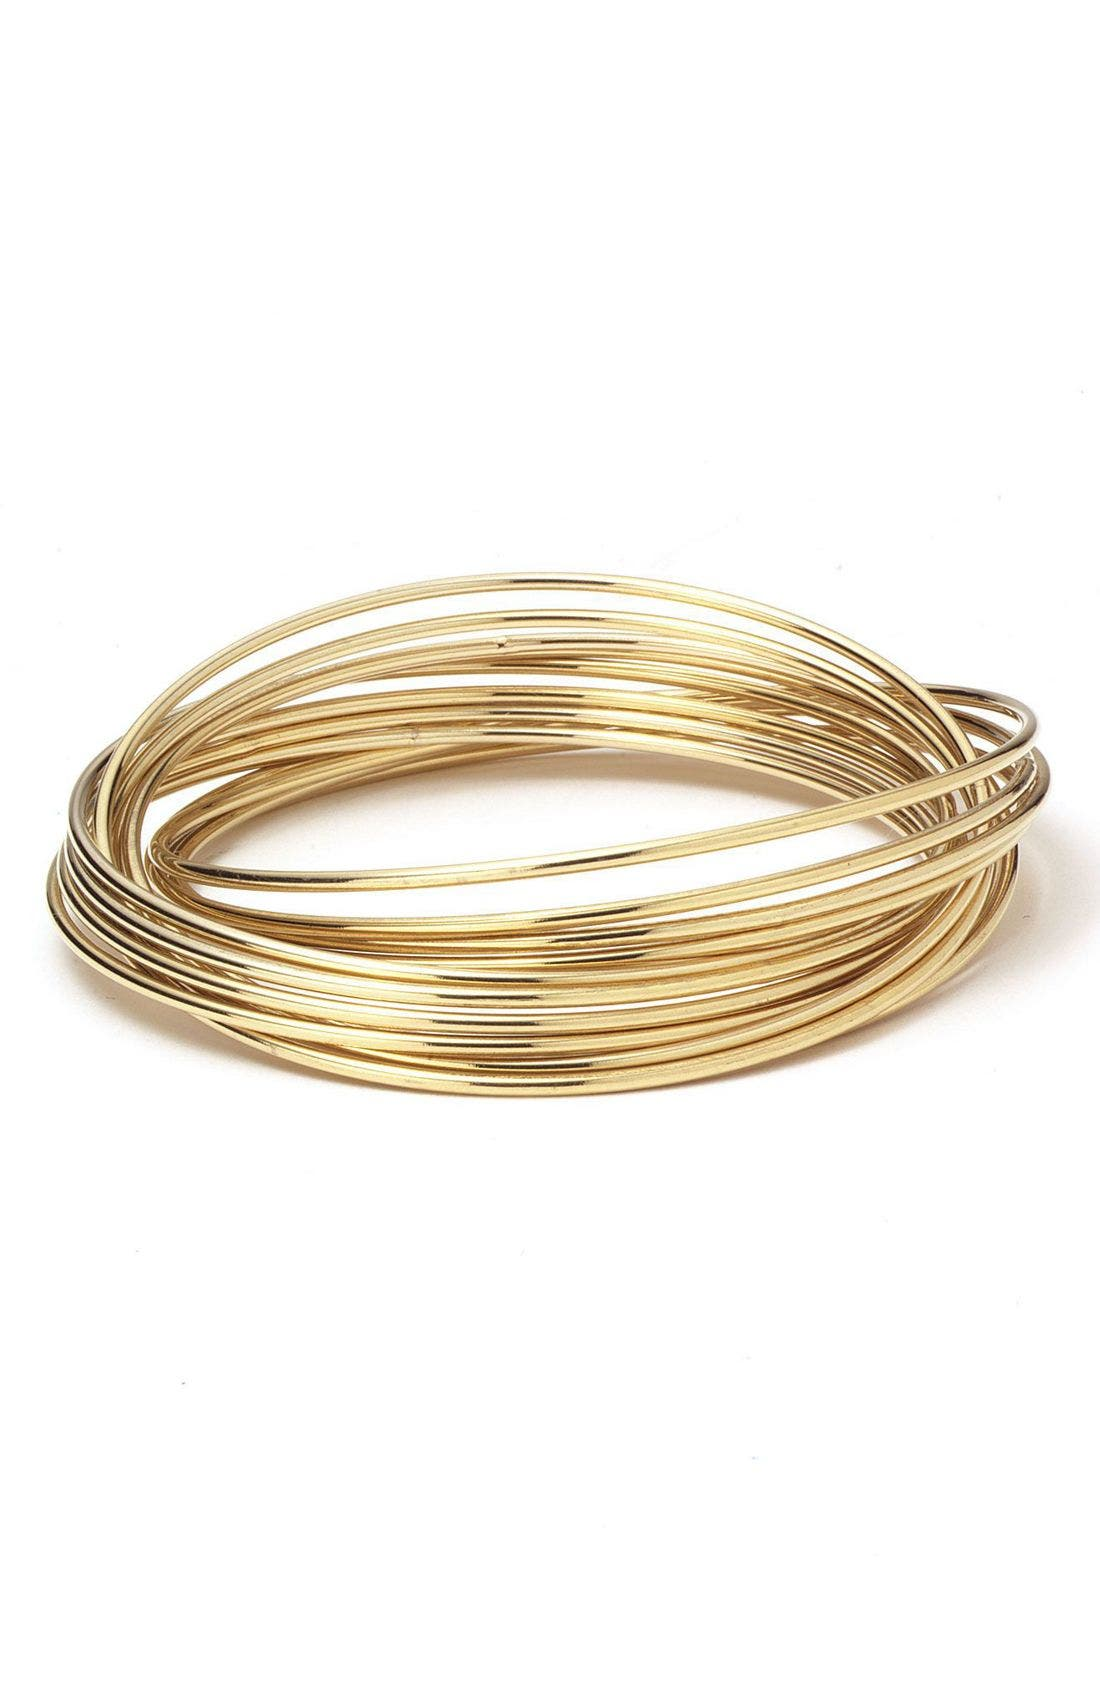 Main Image - Nordstrom Rolling Bangle Bracelets